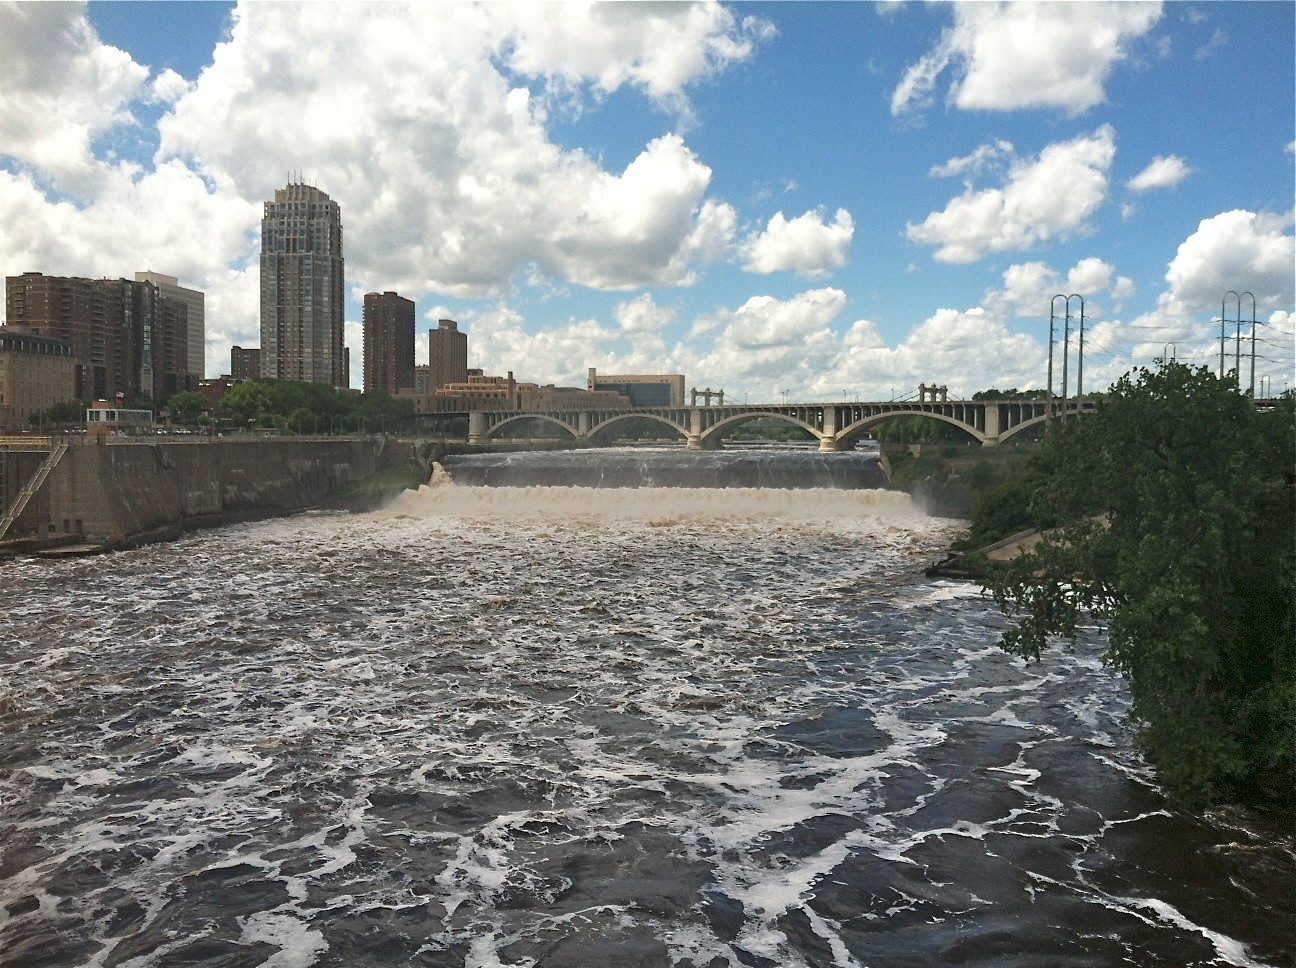 St. Anthony's Falls, the only falls on the Mississippi River.